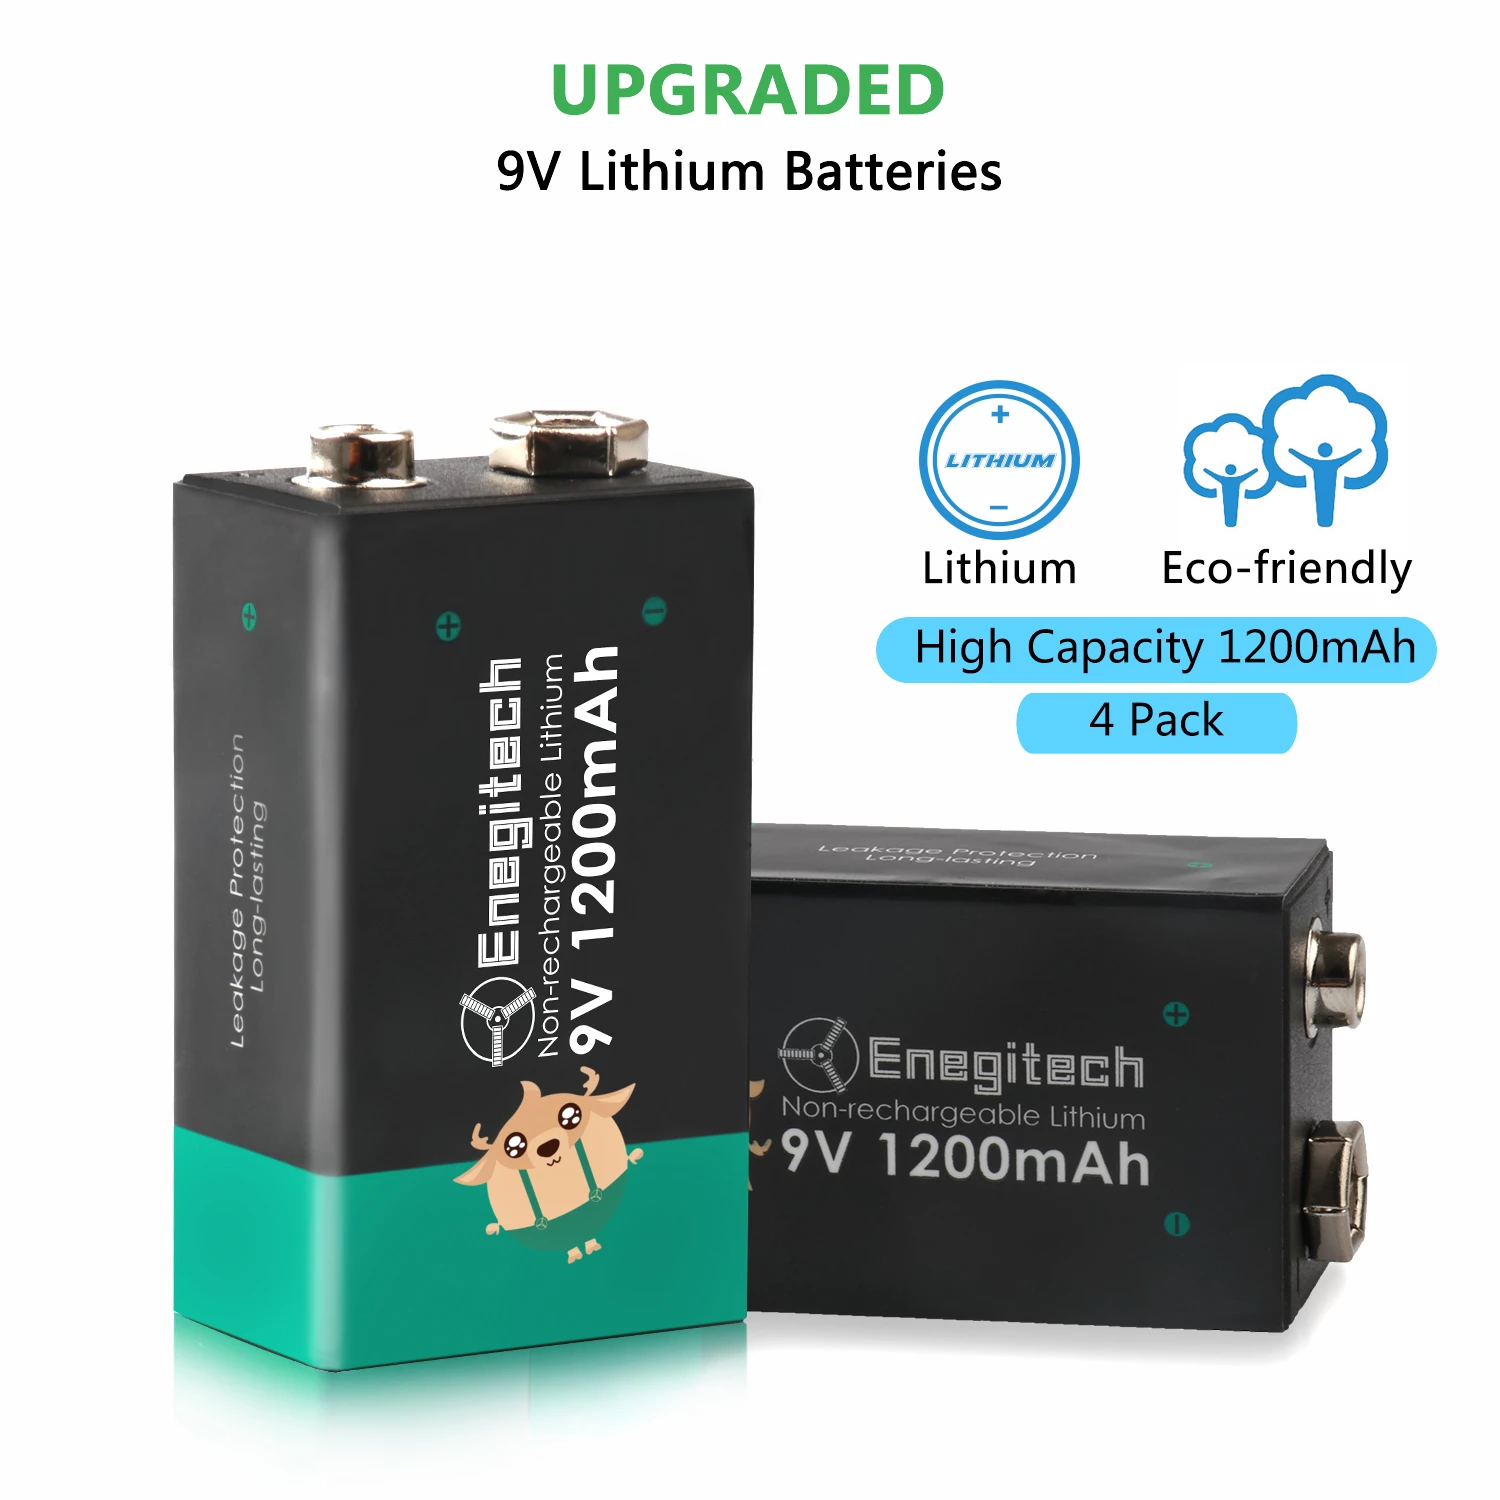 Cr123a Lithium Batteries 3v Battery 1600mah 12pack Upgrade Version Do Not Recharge Lithium Battery Batteries Upgrade